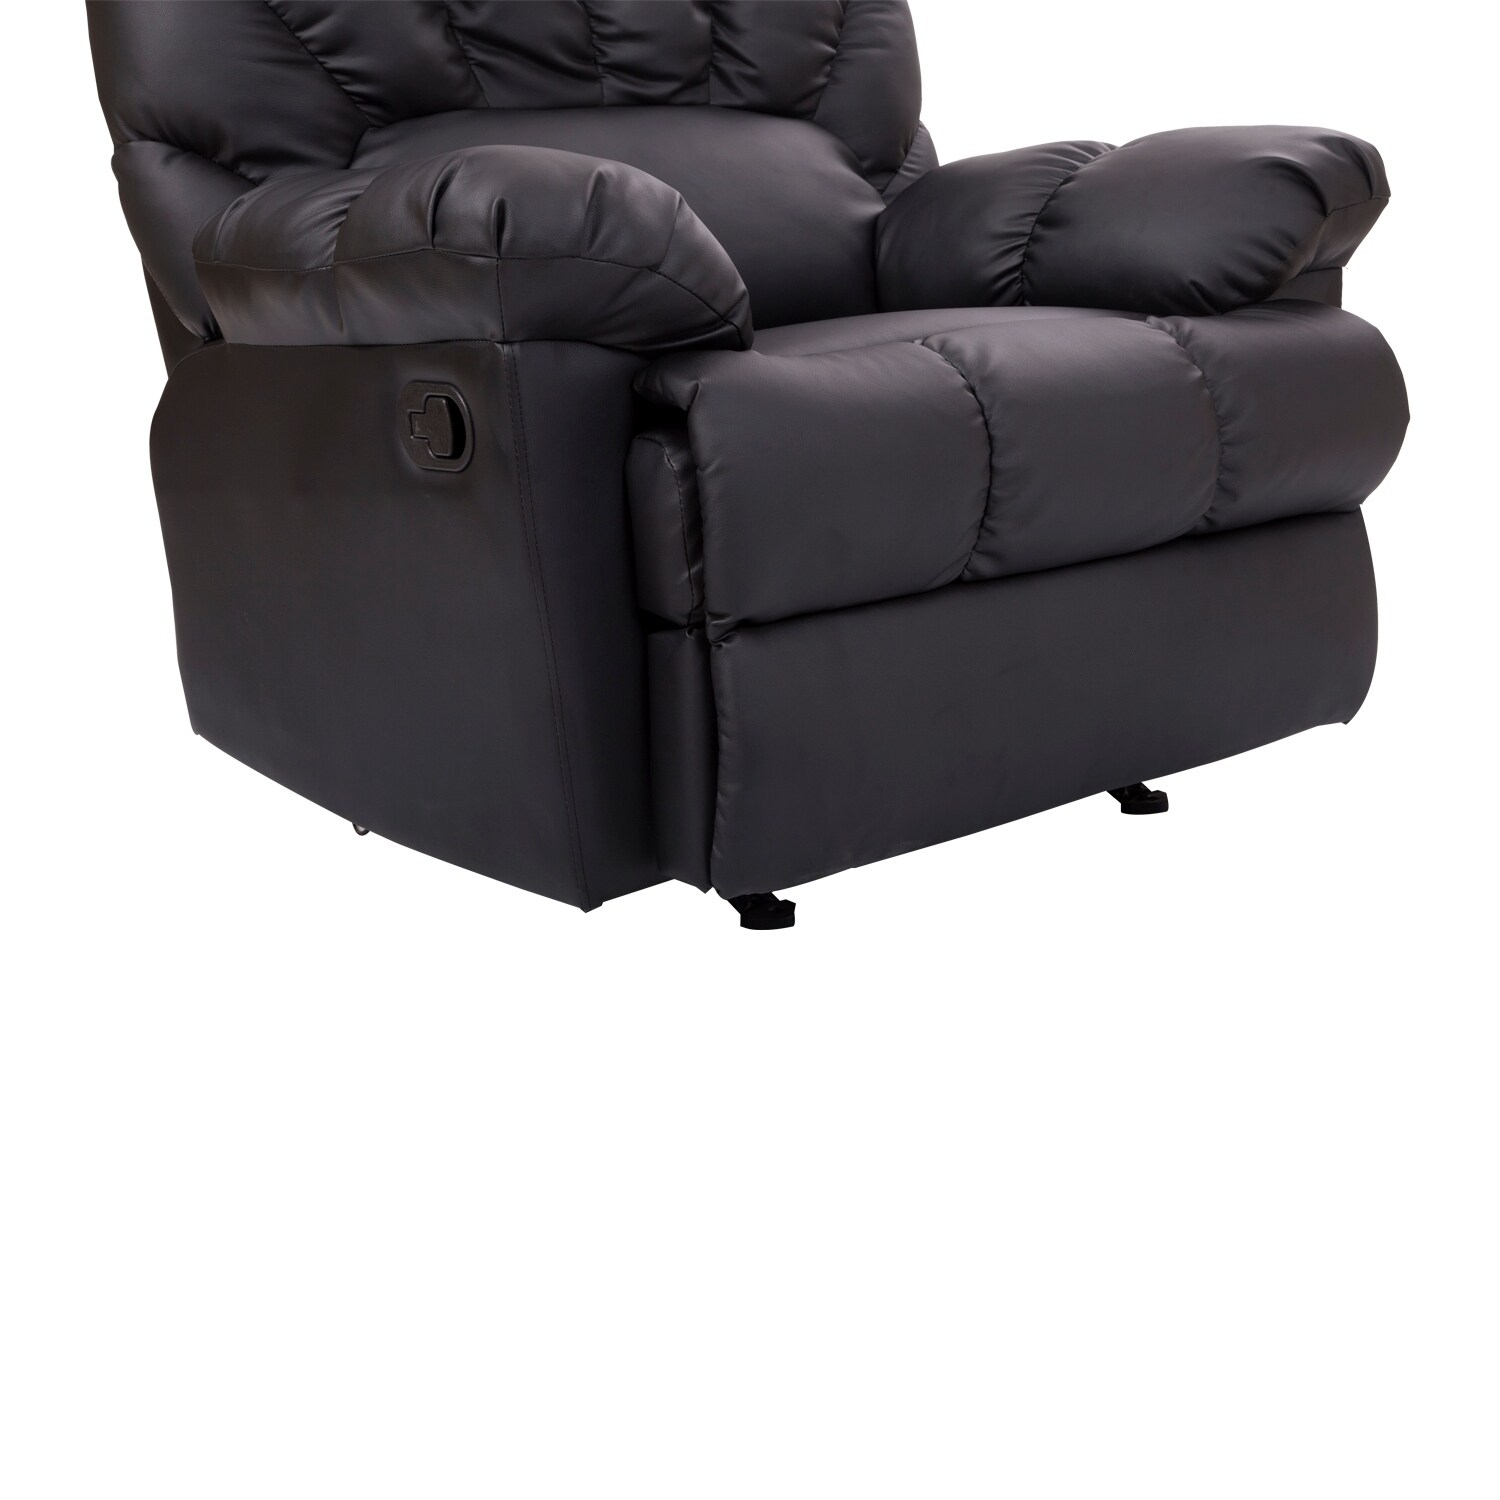 Homcom Pu Leather Rocking Sofa Chair Recliner Free Shipping Today 18038540